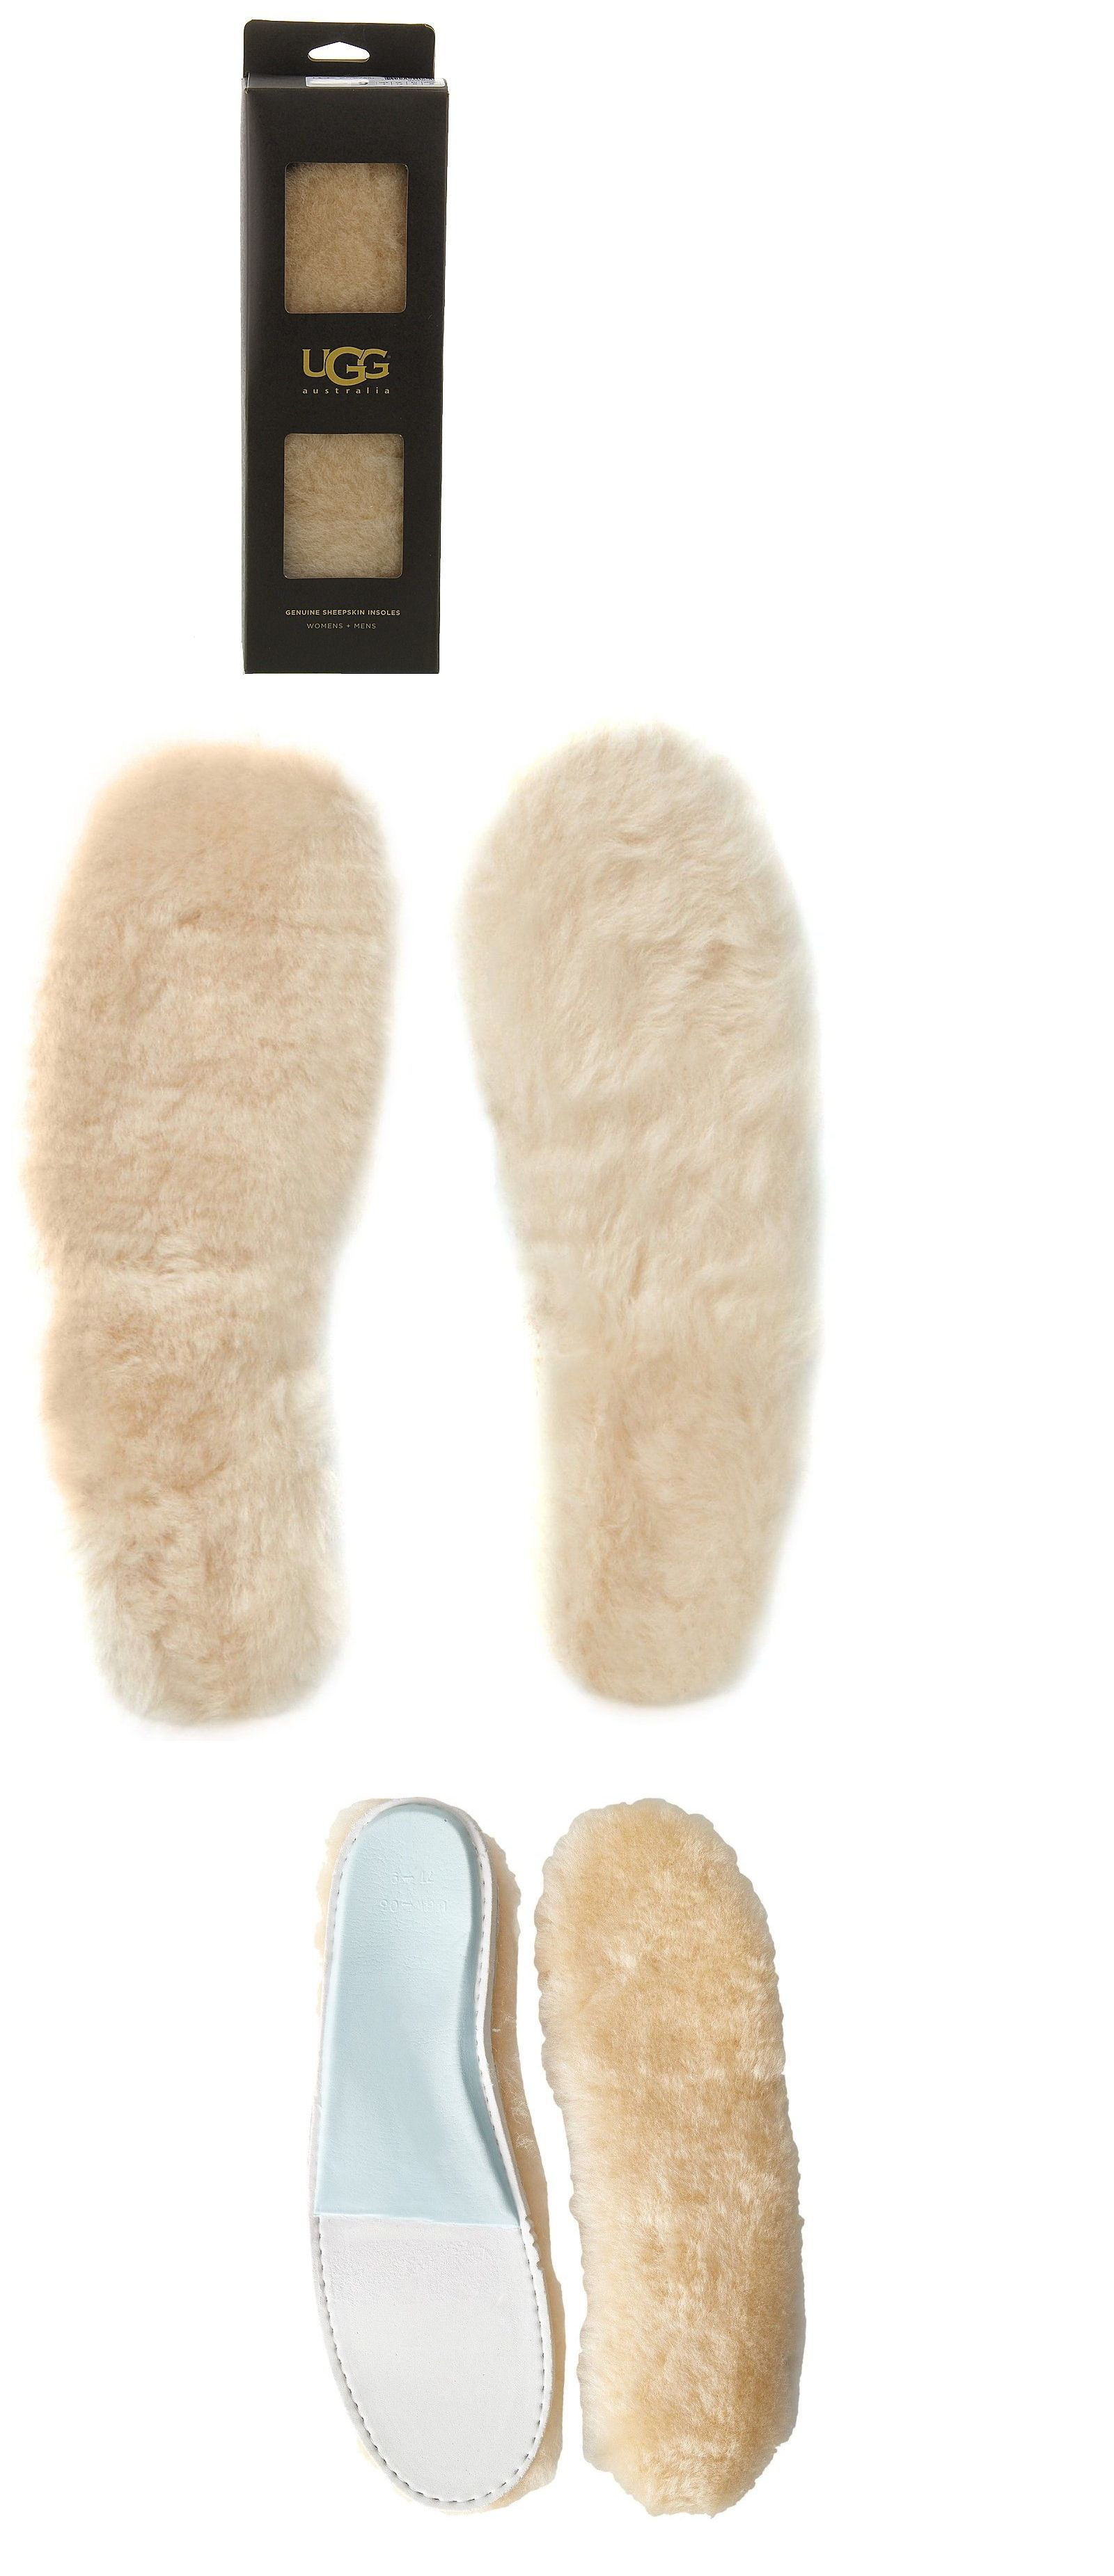 45d9f5d60f9 Insoles 169284: Ugg Women S Sheepskin Boots Insoles Replacement ...